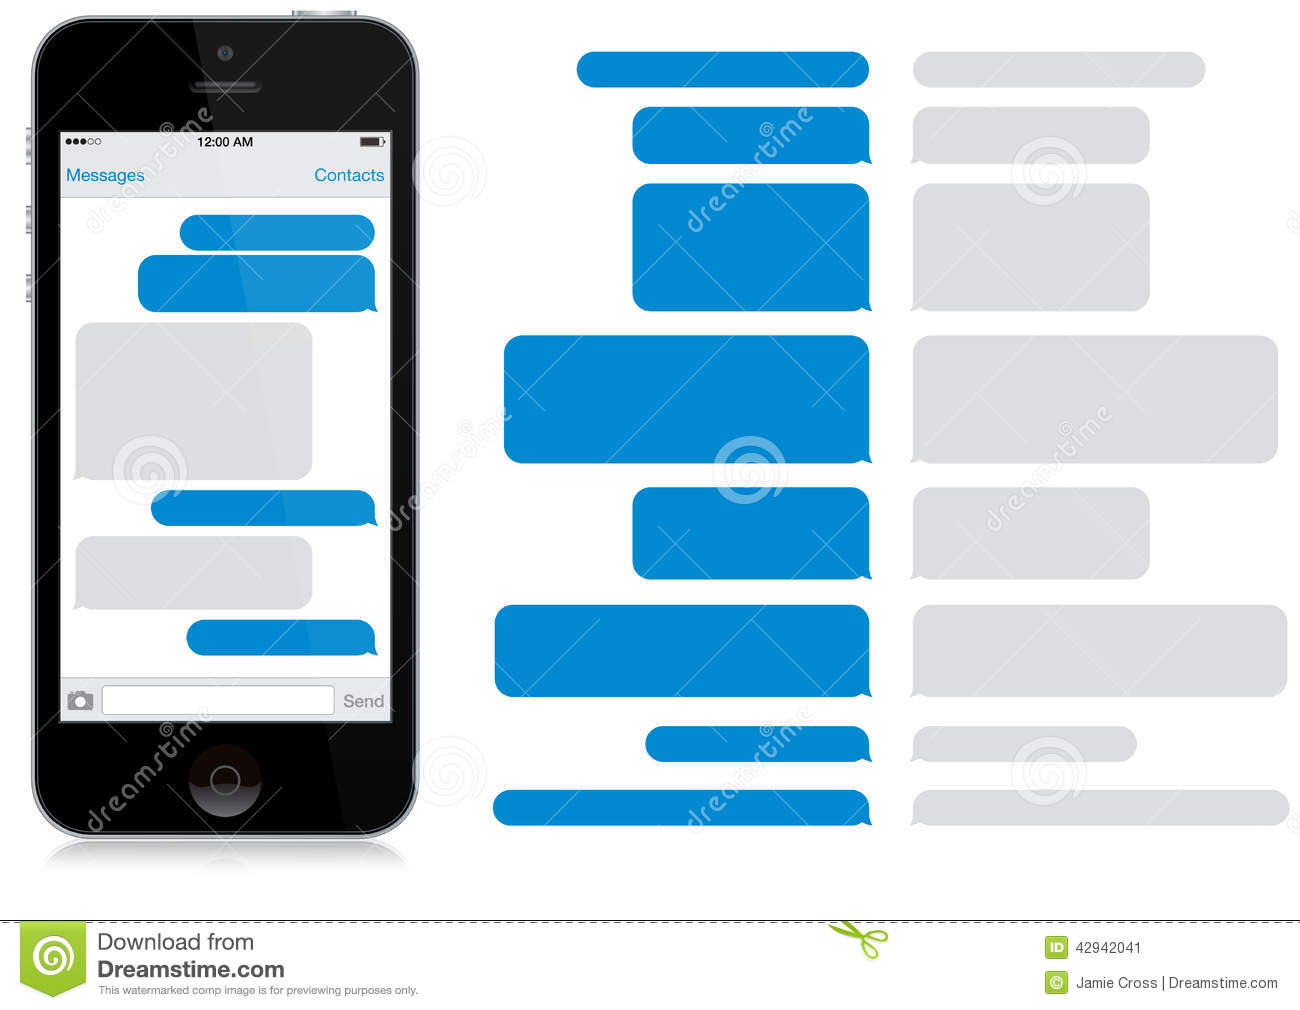 Text phone clipart black and white Iphone Text Clipart | Free download best Iphone Text Clipart ... black and white